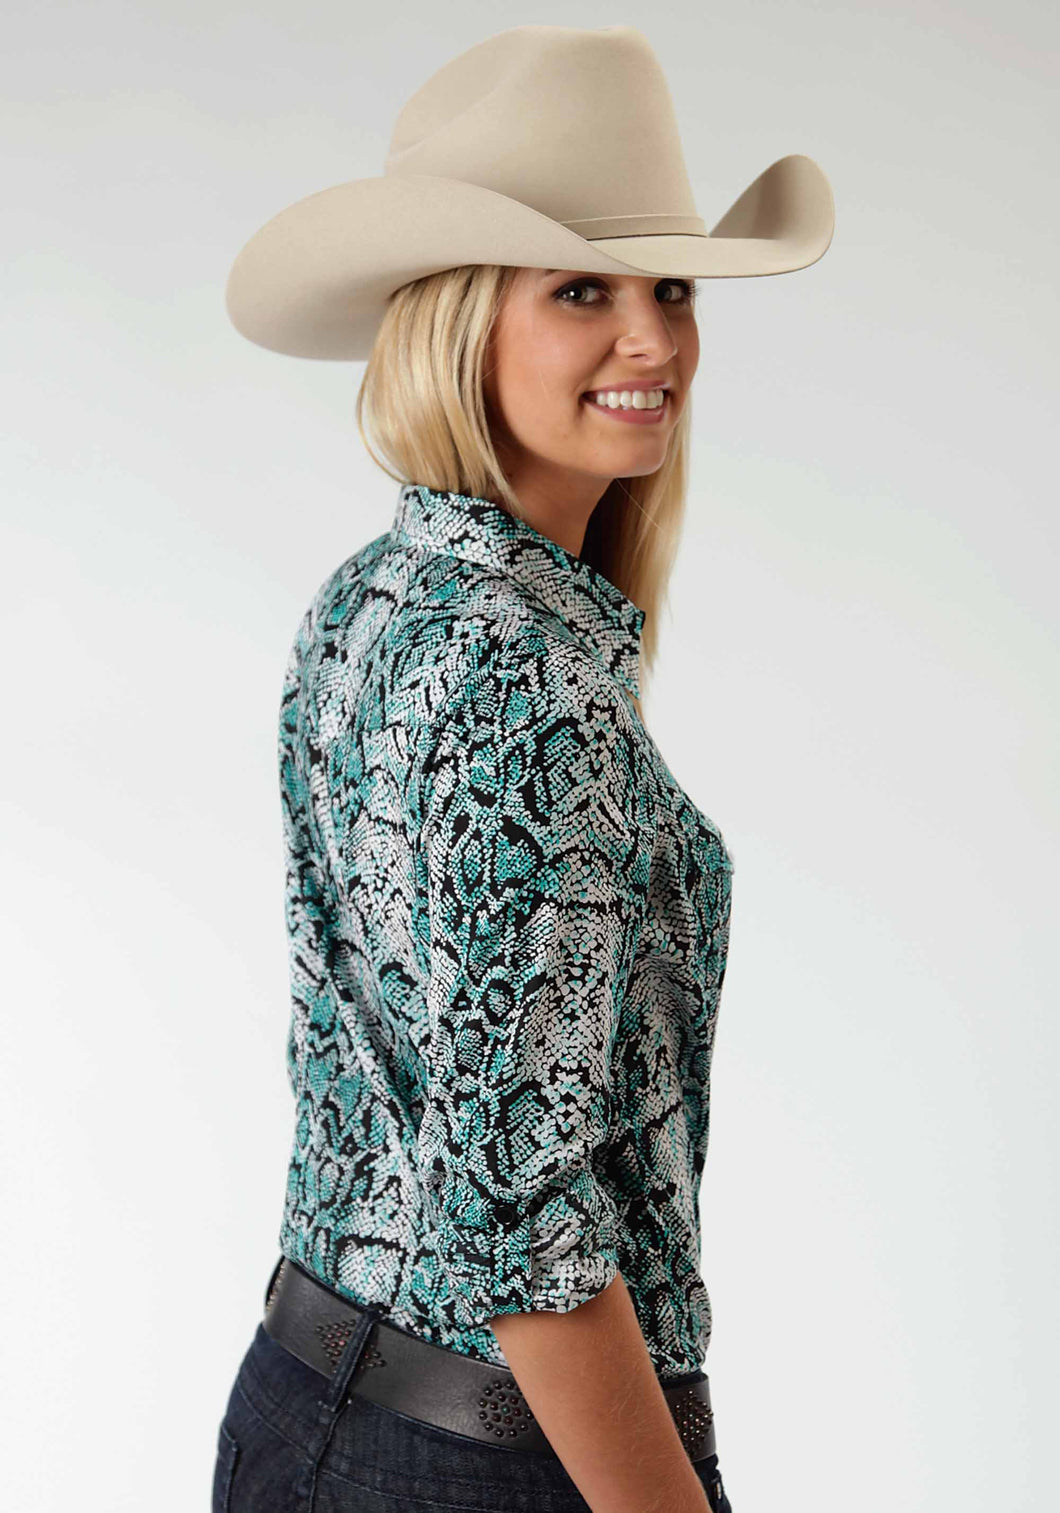 Five Star- Turquoise Cove 5star Womens Long Sleeve Shirt 0424 Snake Print Retro Shirt